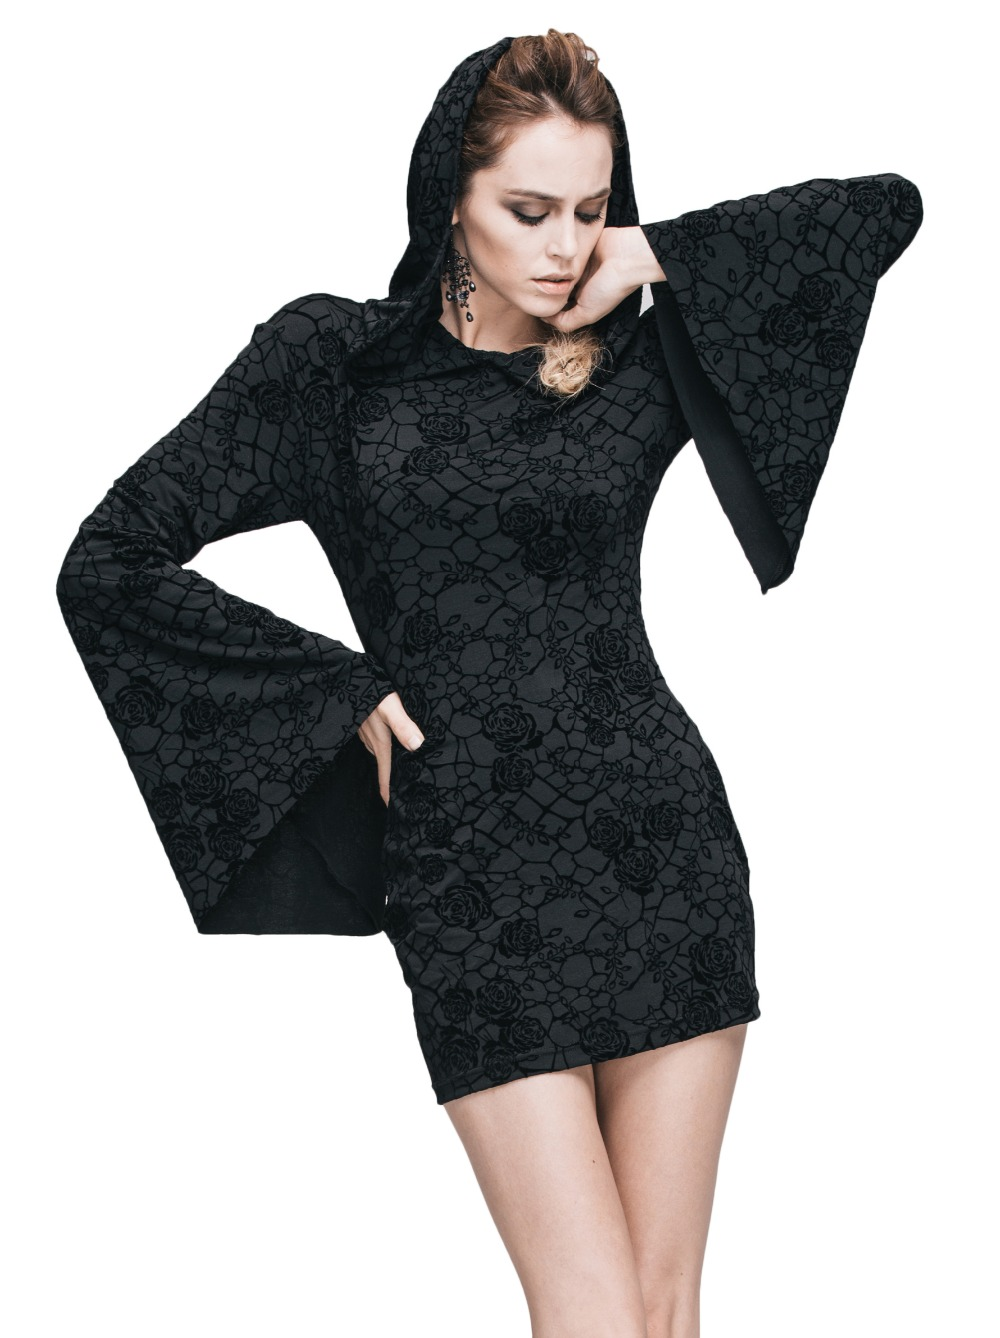 Steampunk Gothic Ukraine Black Dresses For Women Roses Print Flocking Knitted Dress With Hooded Long Sleeve Women Clothing 9